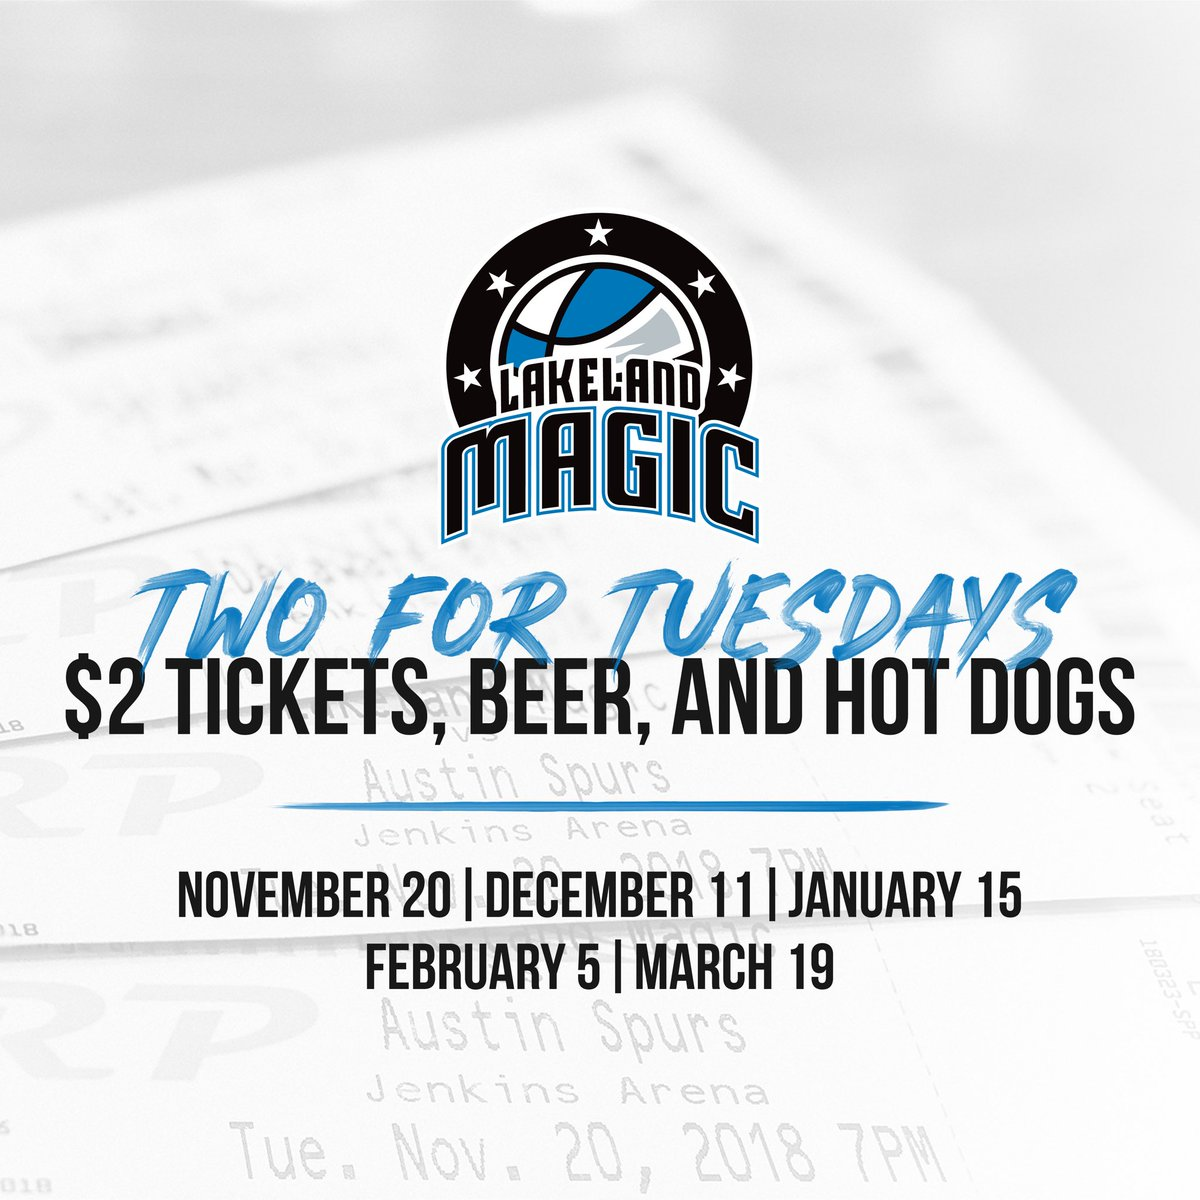 What are you doing this Tuesday? $2 tickets, beer, and hot dogs every Tuesday all season long!